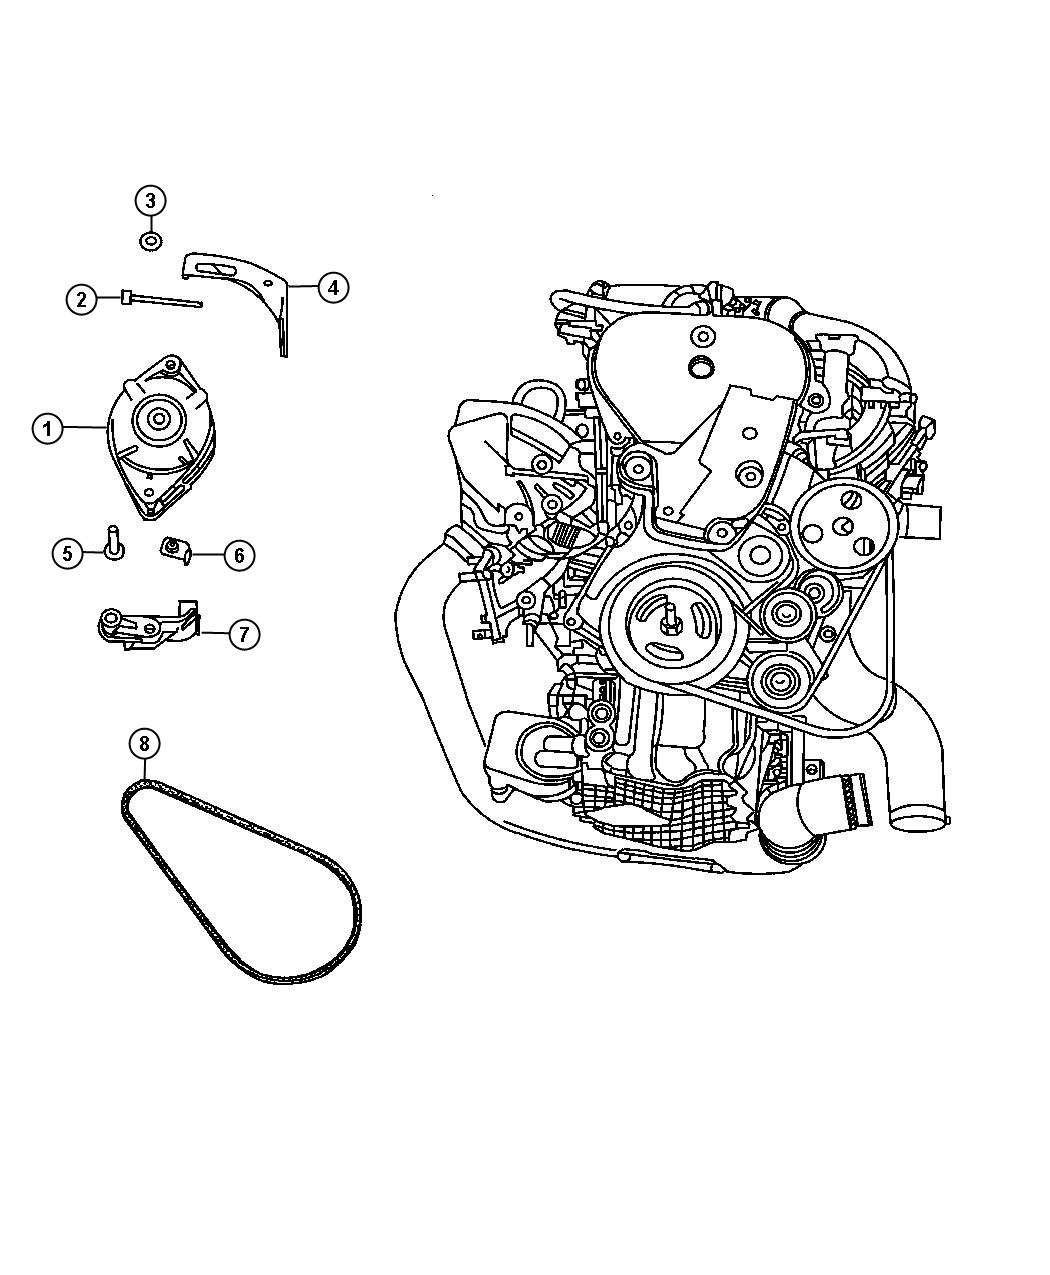 Alternator 2 4l Edt Dohc Turbo